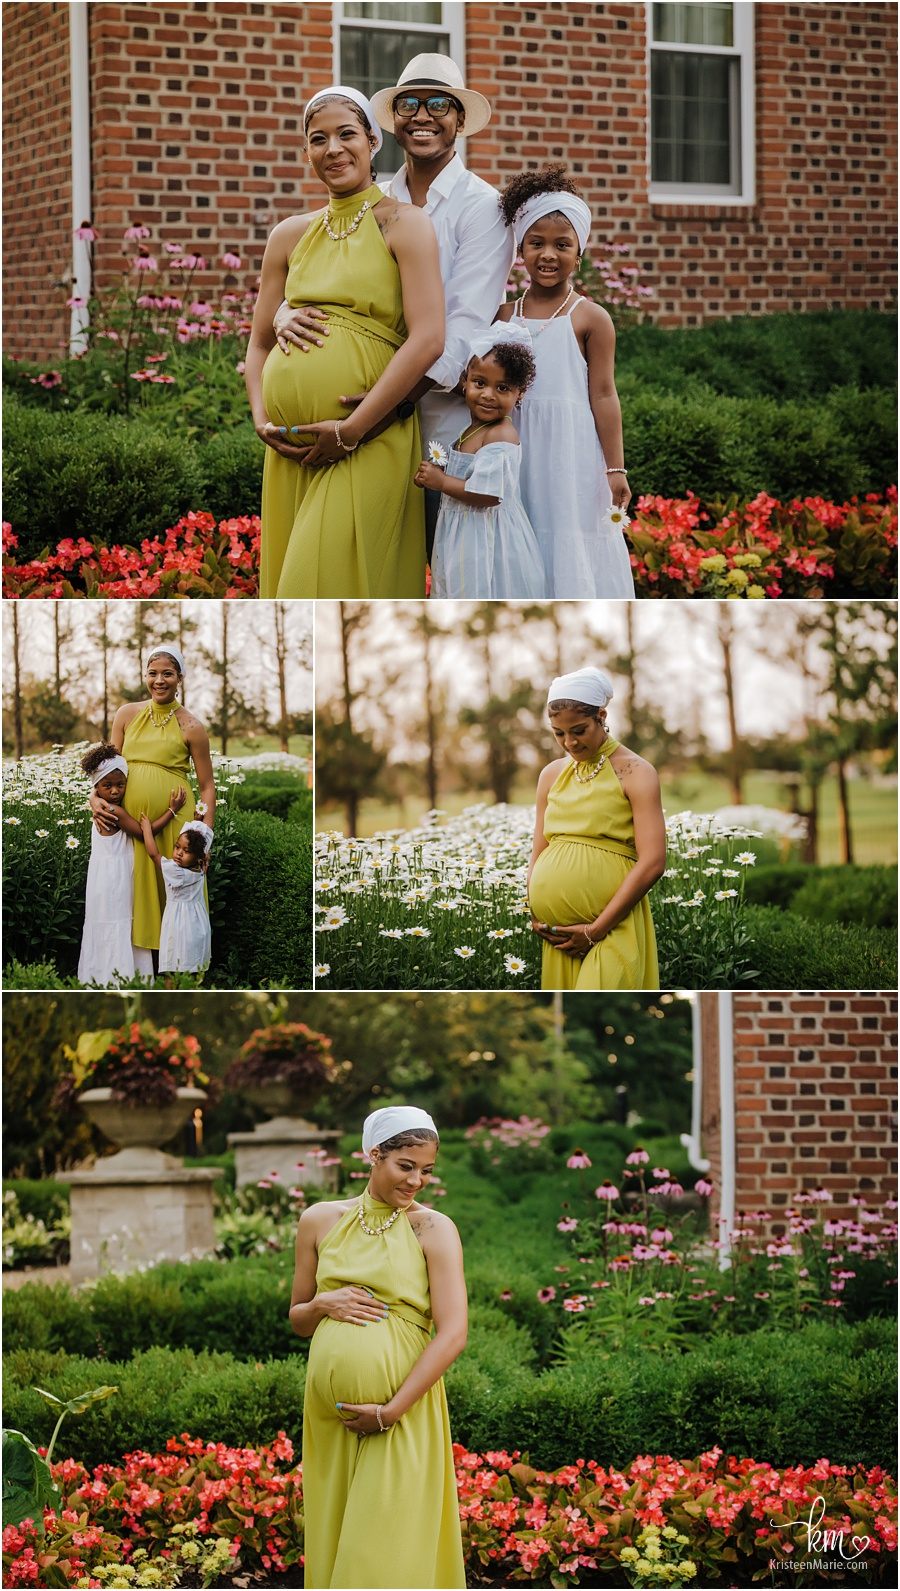 beautiful family for maternity photography session - Indianapolis, IN